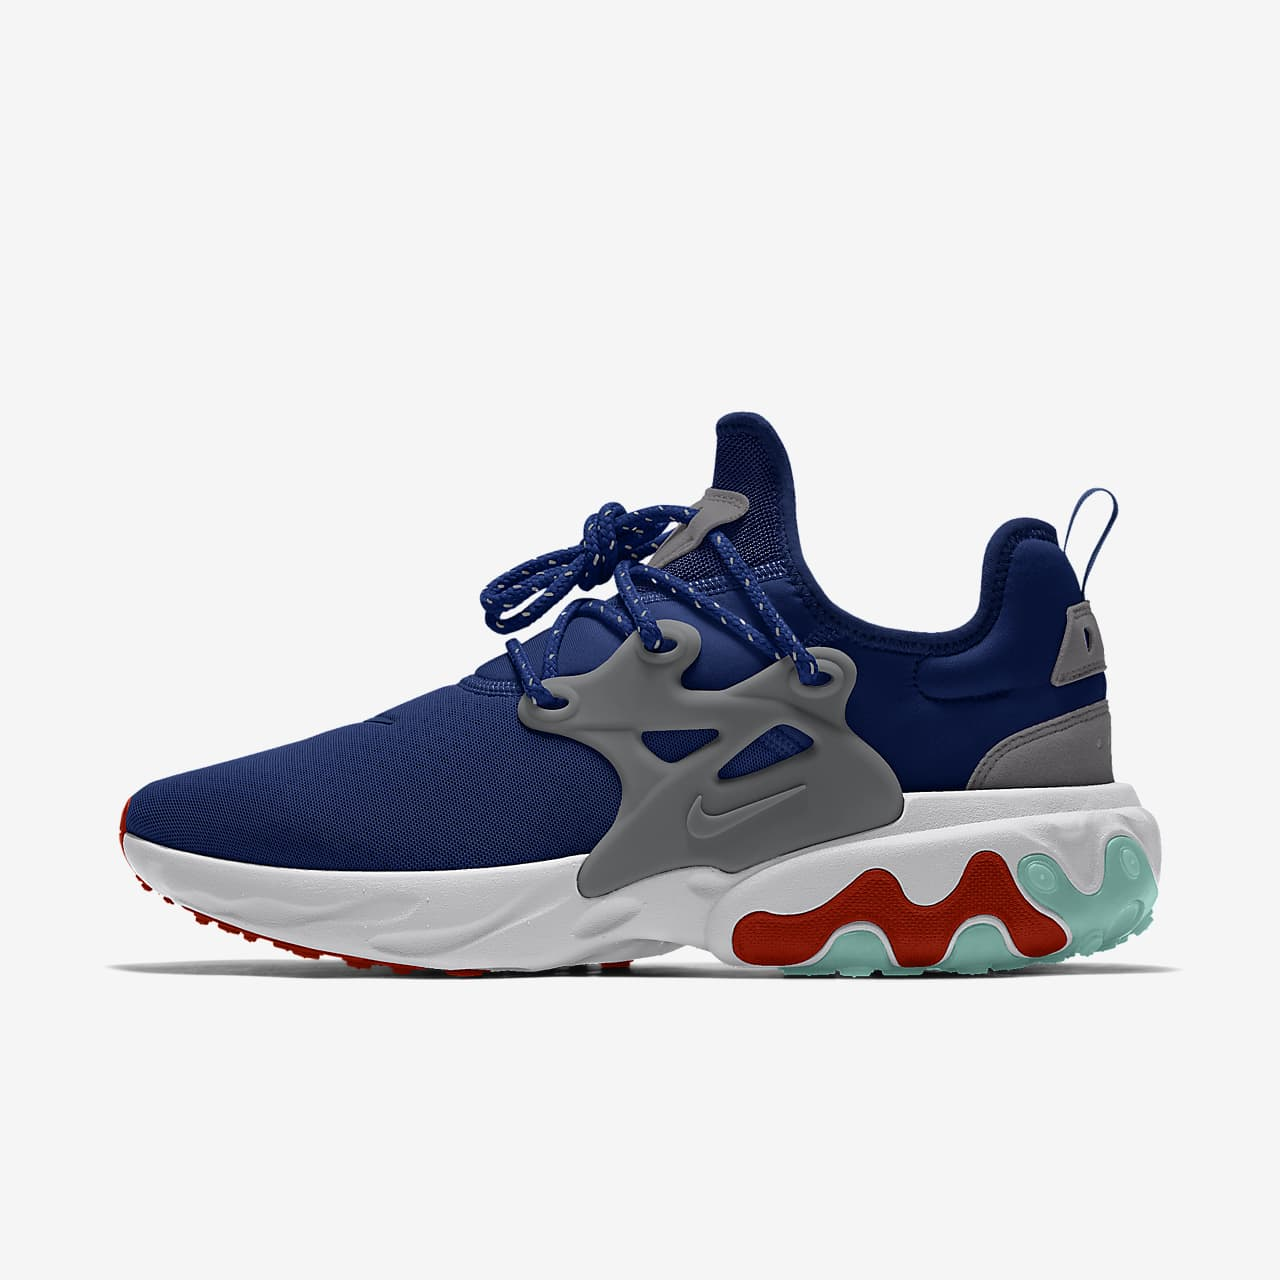 Chaussure personnalisable Nike React Presto By You pour Homme